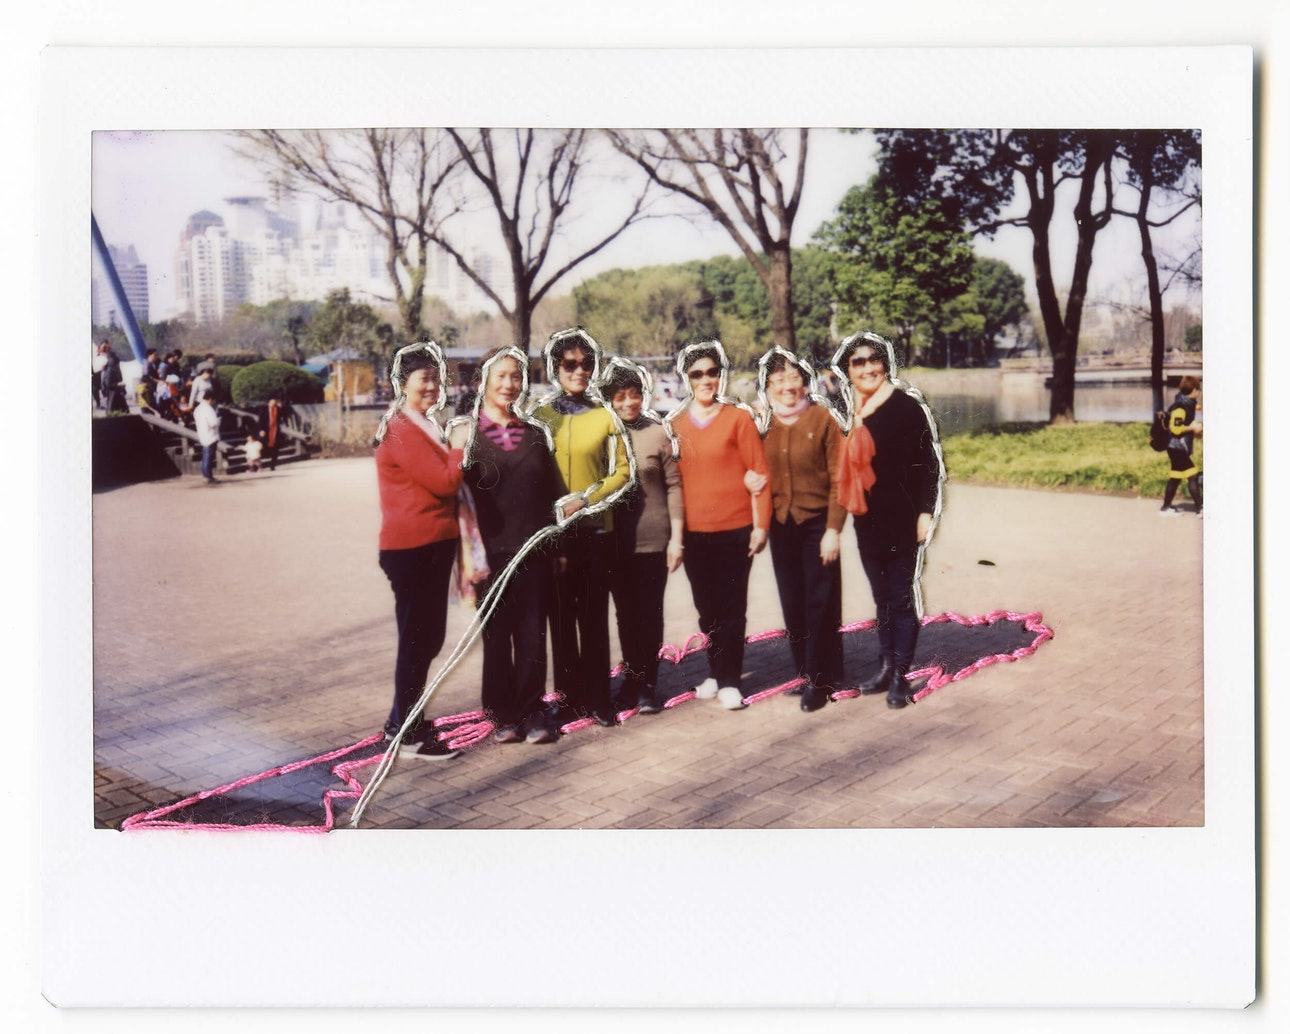 polaroid_066 copy